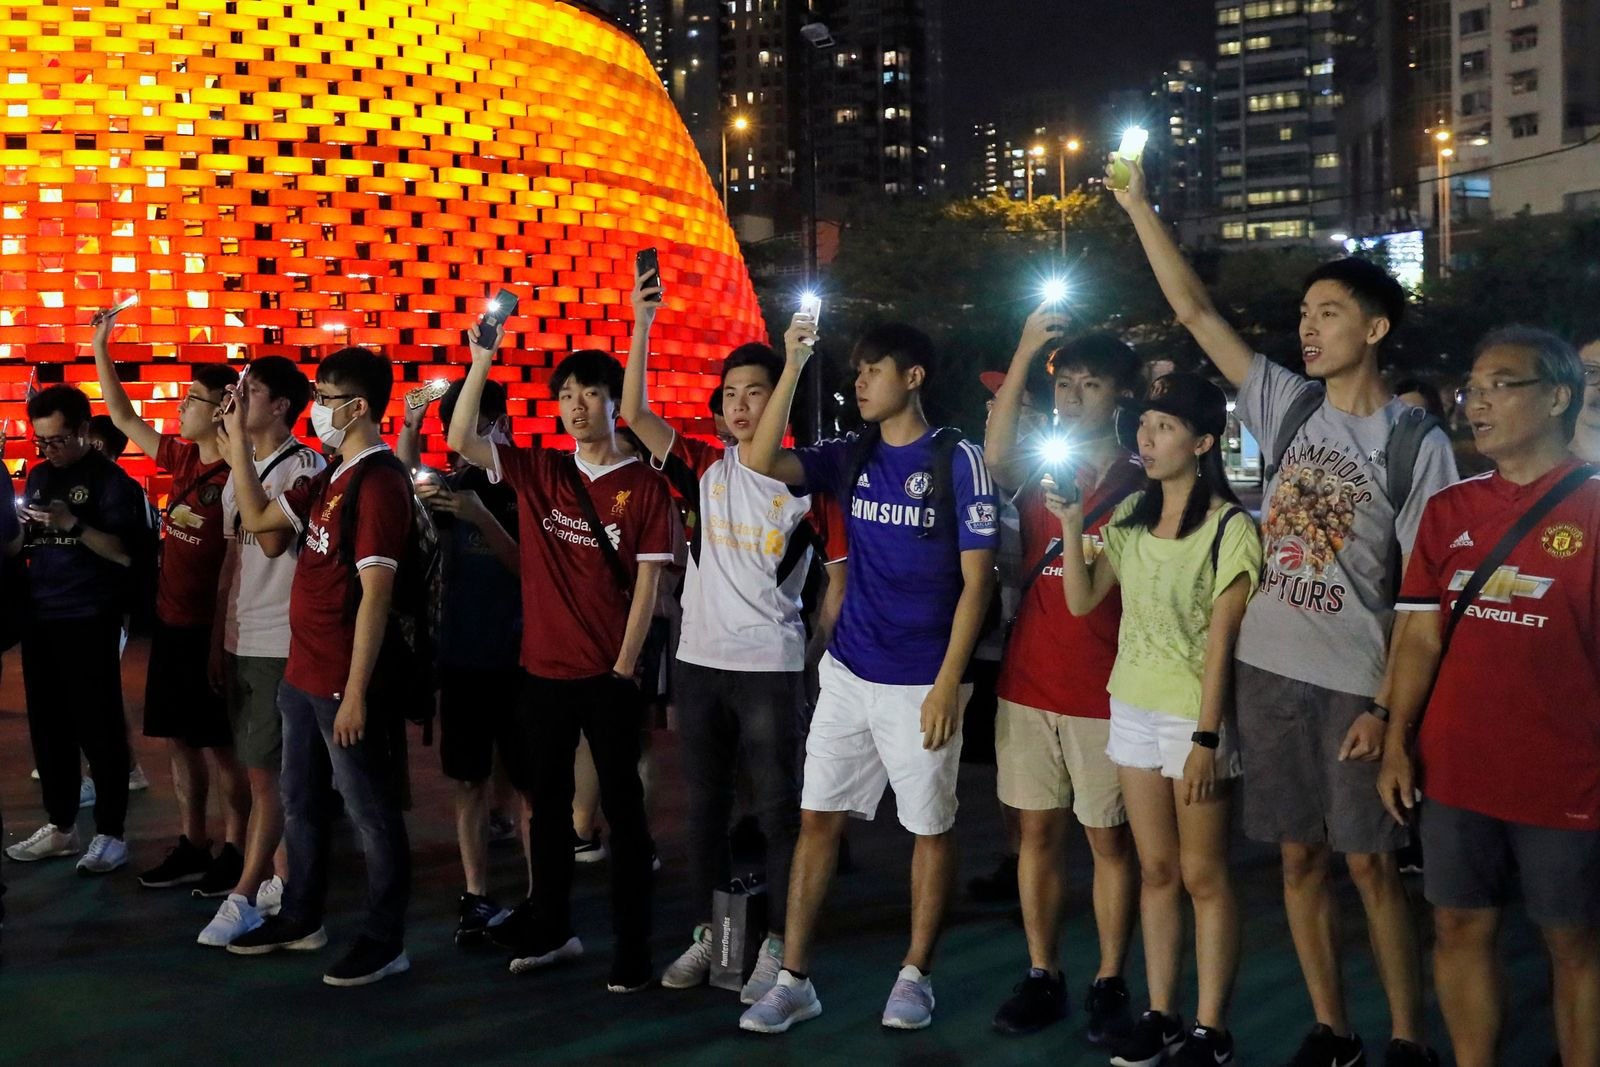 Pro-democracy football fans gather to form a human chain as they sing songs at Victoria Park in Hong Kong, Wednesday, Sept. 18, 2019. (AP Photo/Kin Cheung)